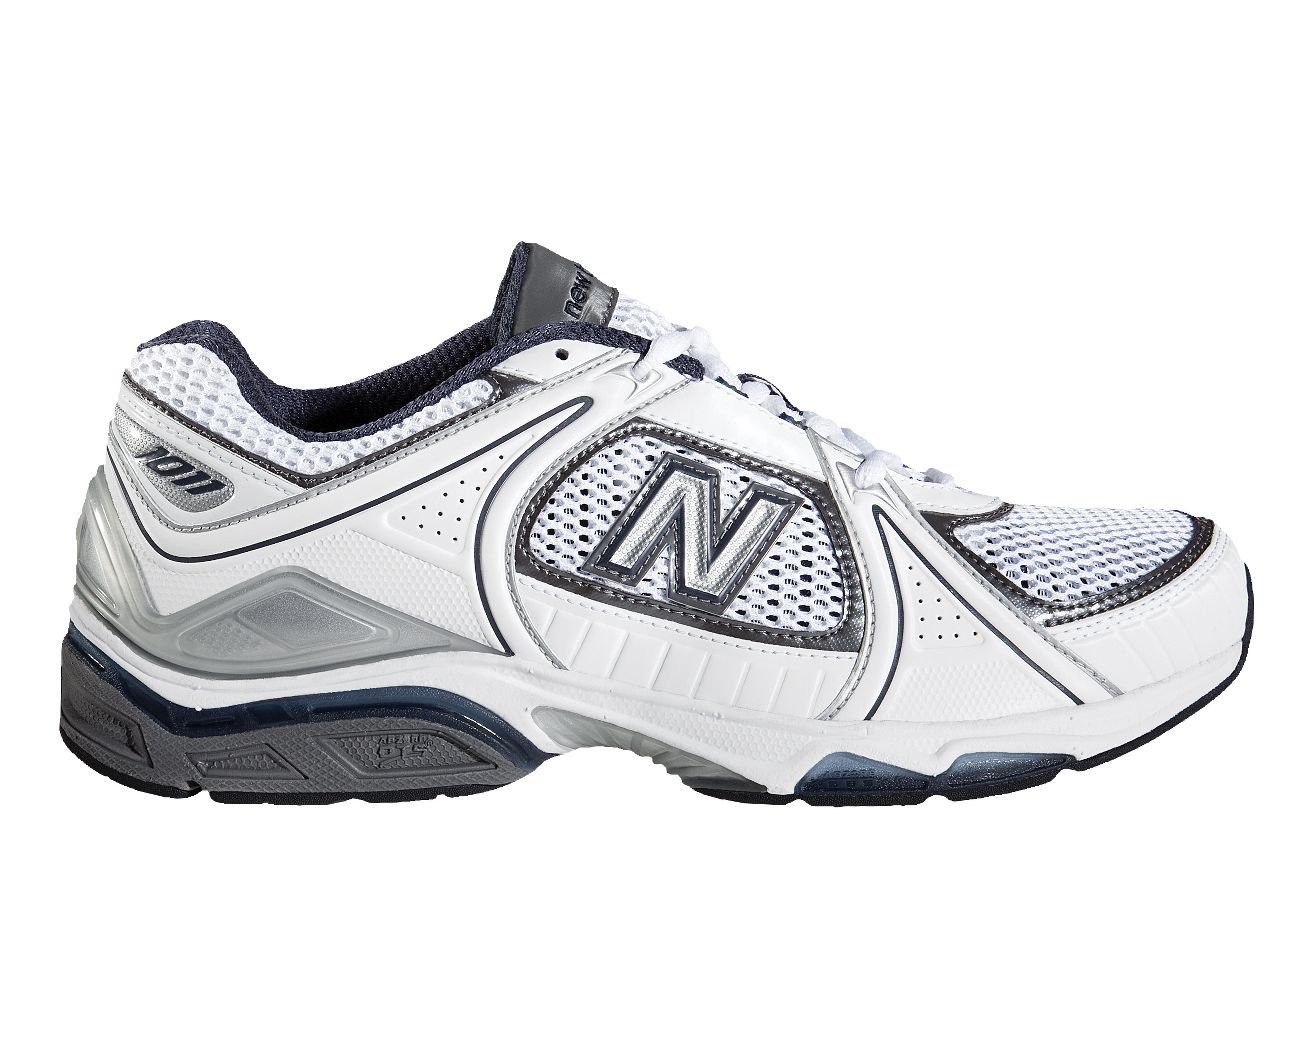 new balance shoes 623 4ever products with chandani